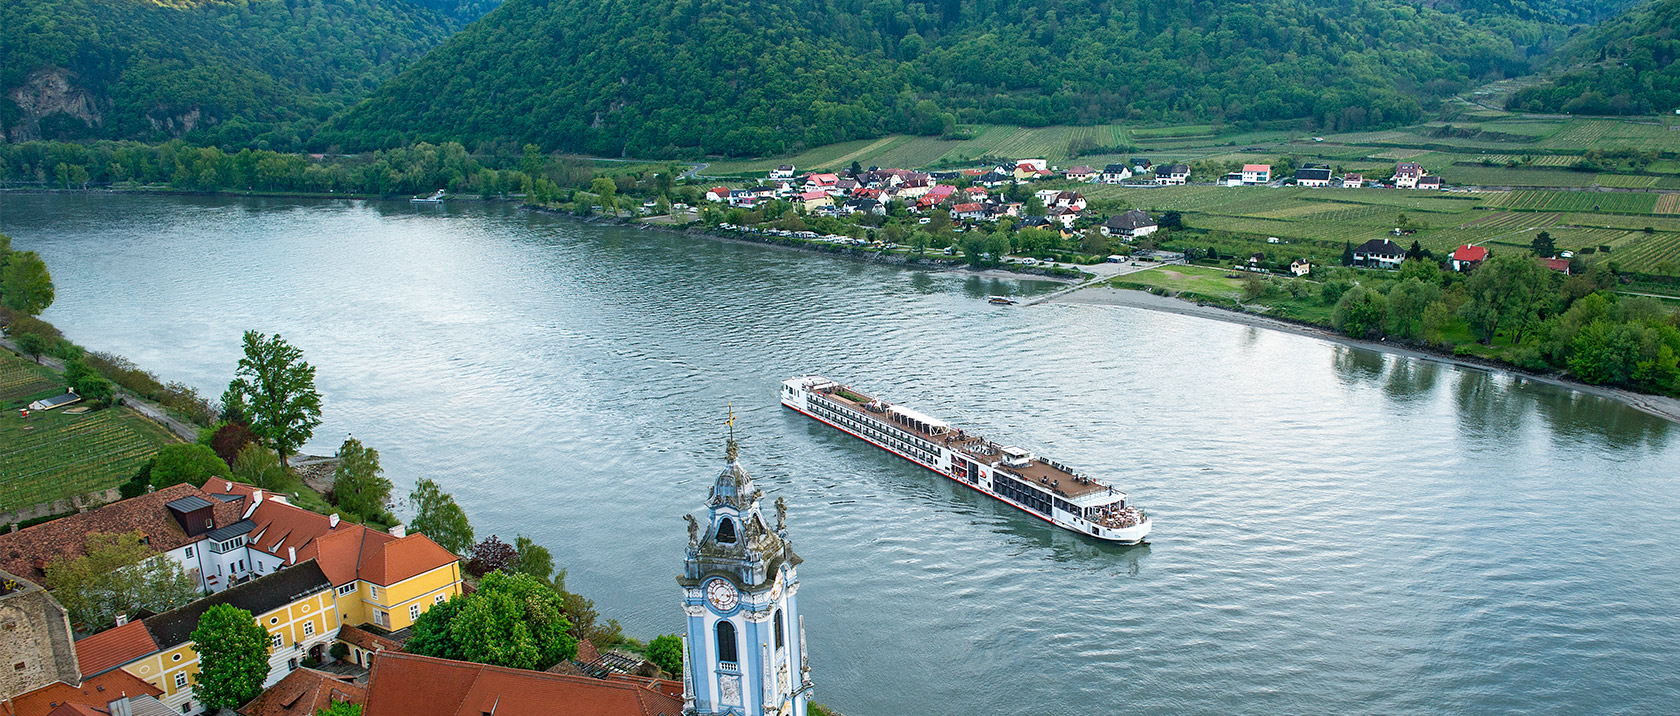 Aerial view of a Viking river ship sailing past Dürnstein, Austria along the Danube river